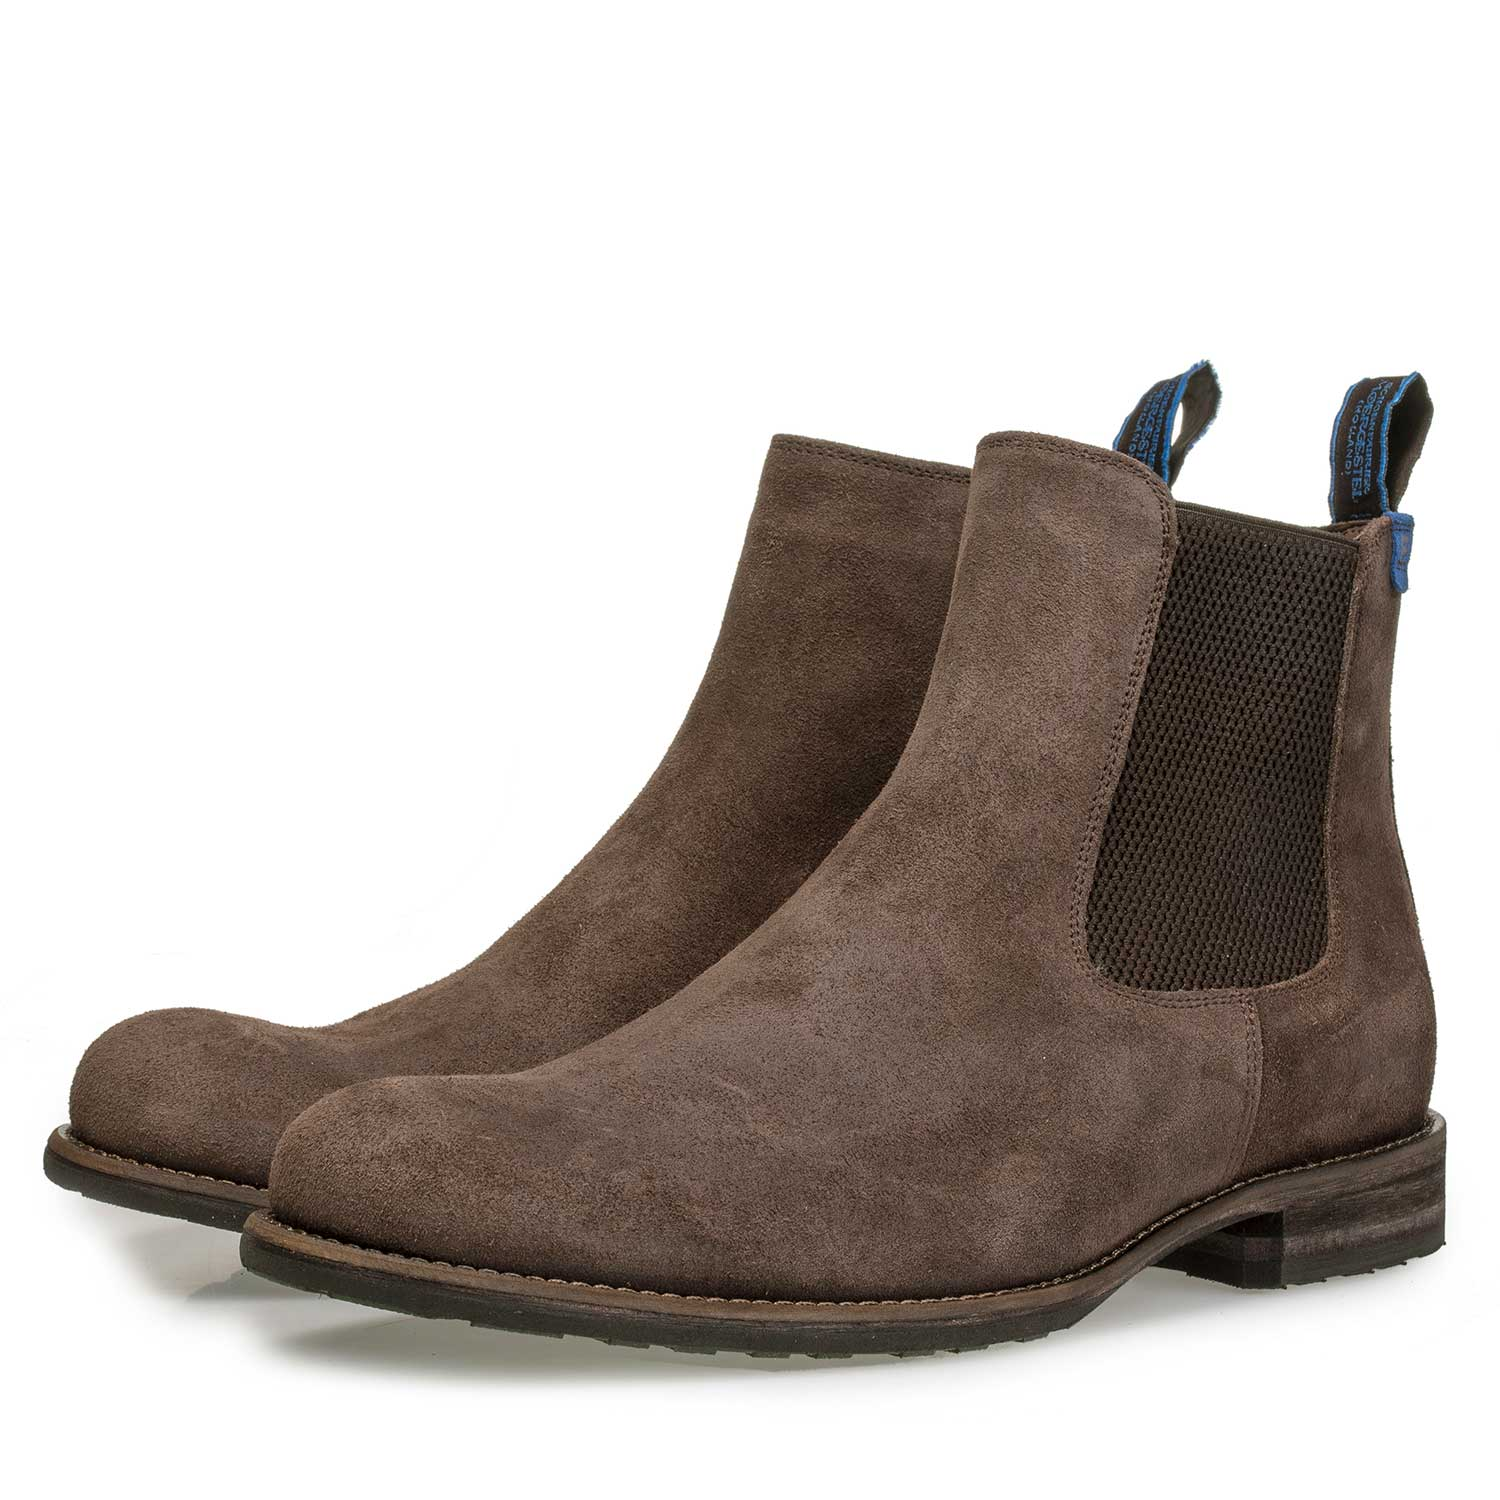 10289/00 - Wool lined brown suede leather Chelsea boot